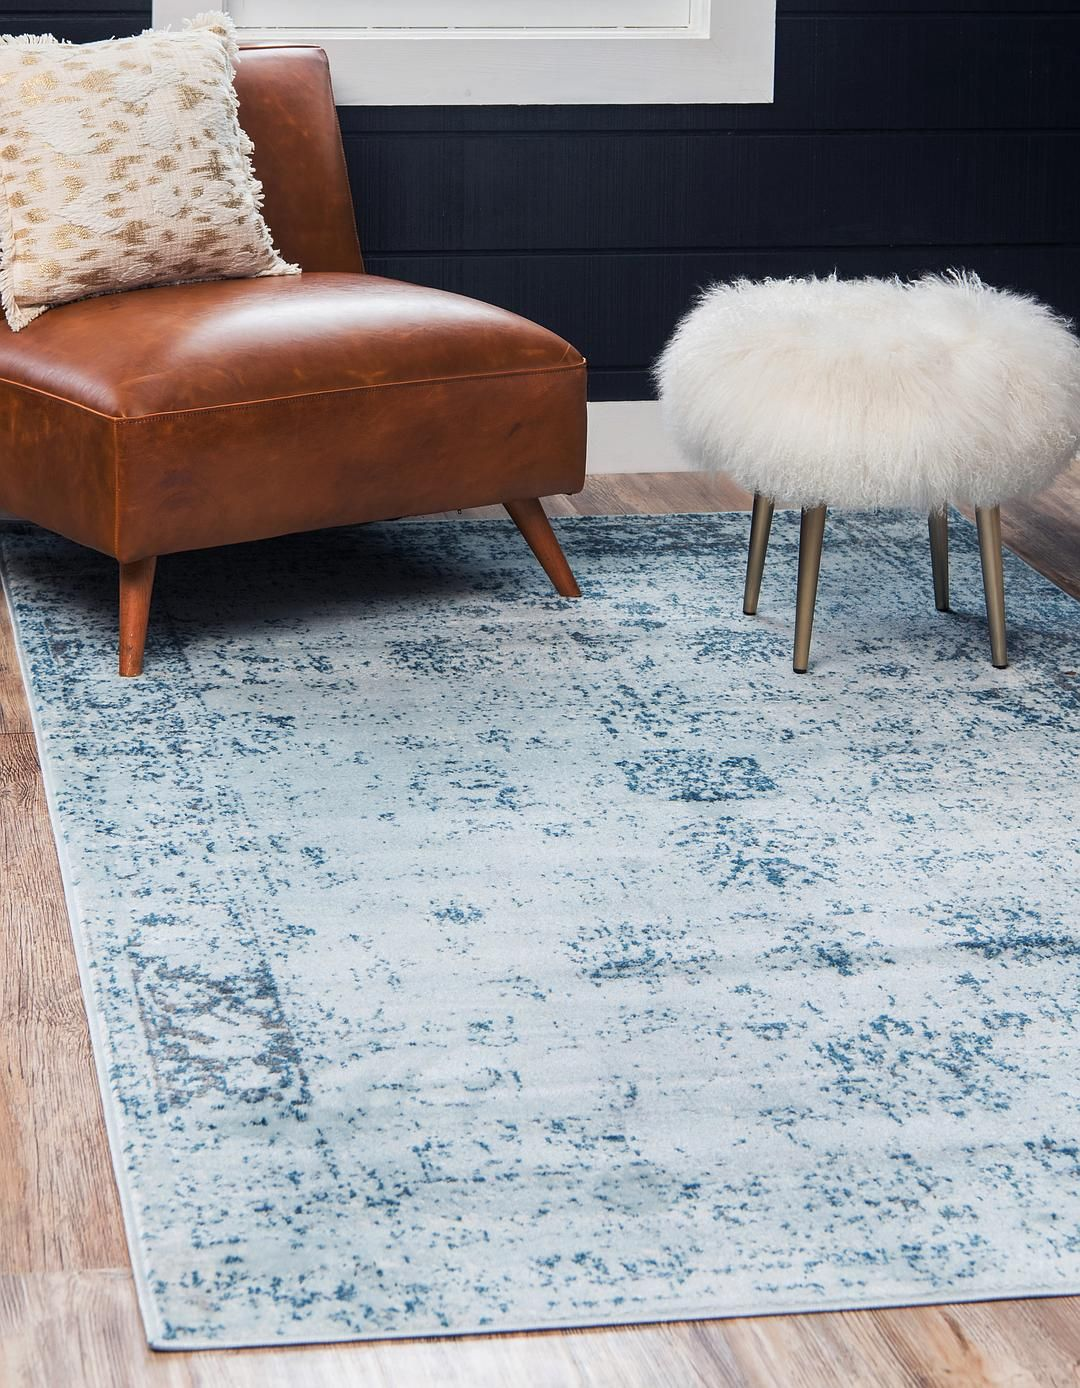 Charlton Home Driffield Taupe Black Area Rug Room Size Rugs Area Rugs Rugs